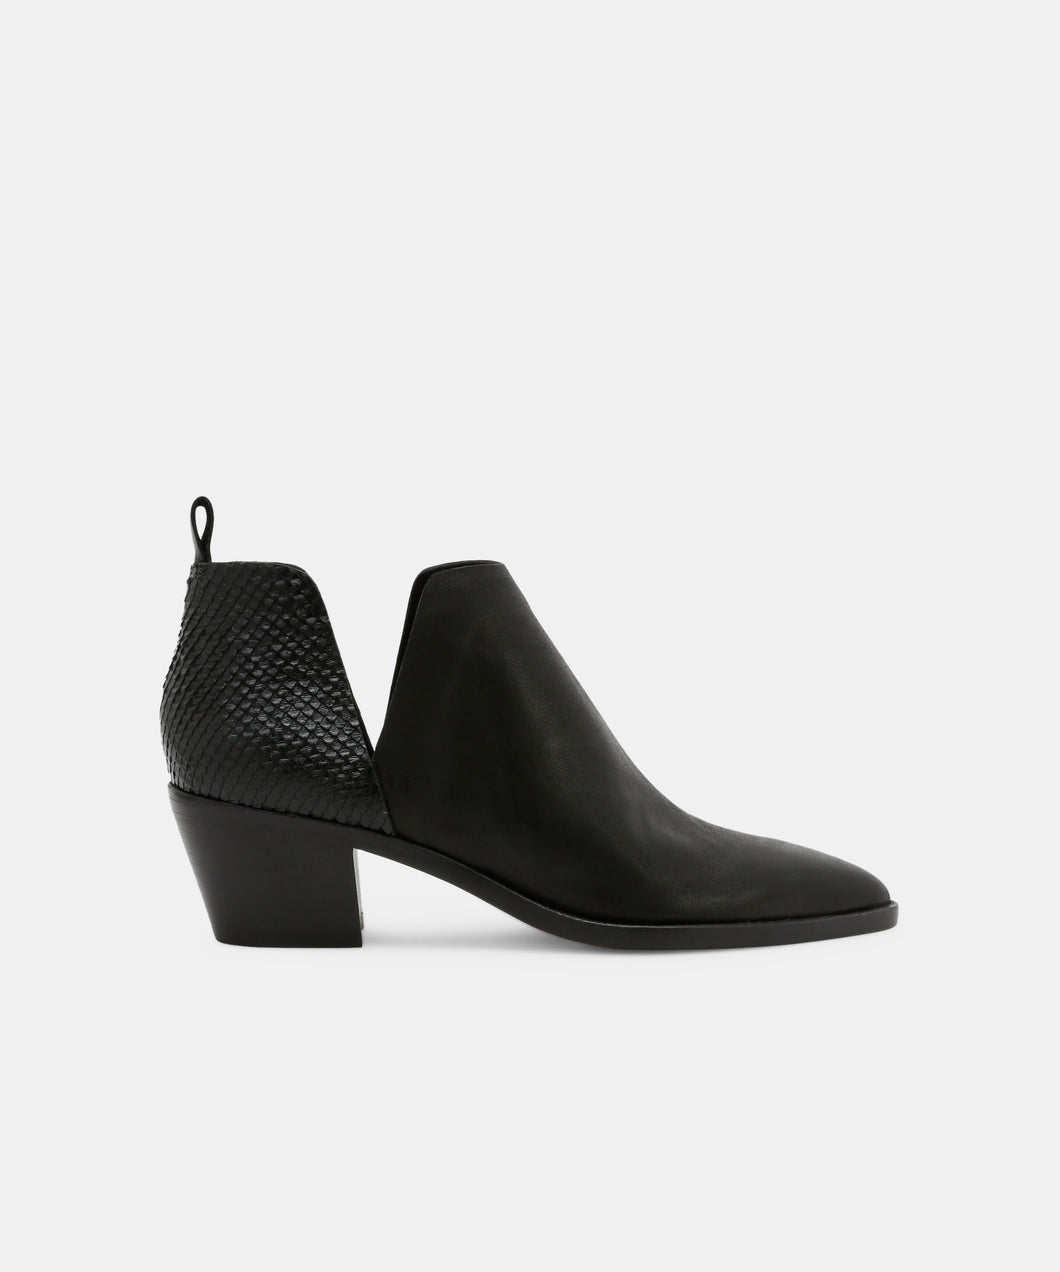 SONNI BOOTIES BLACK -   Dolce Vita